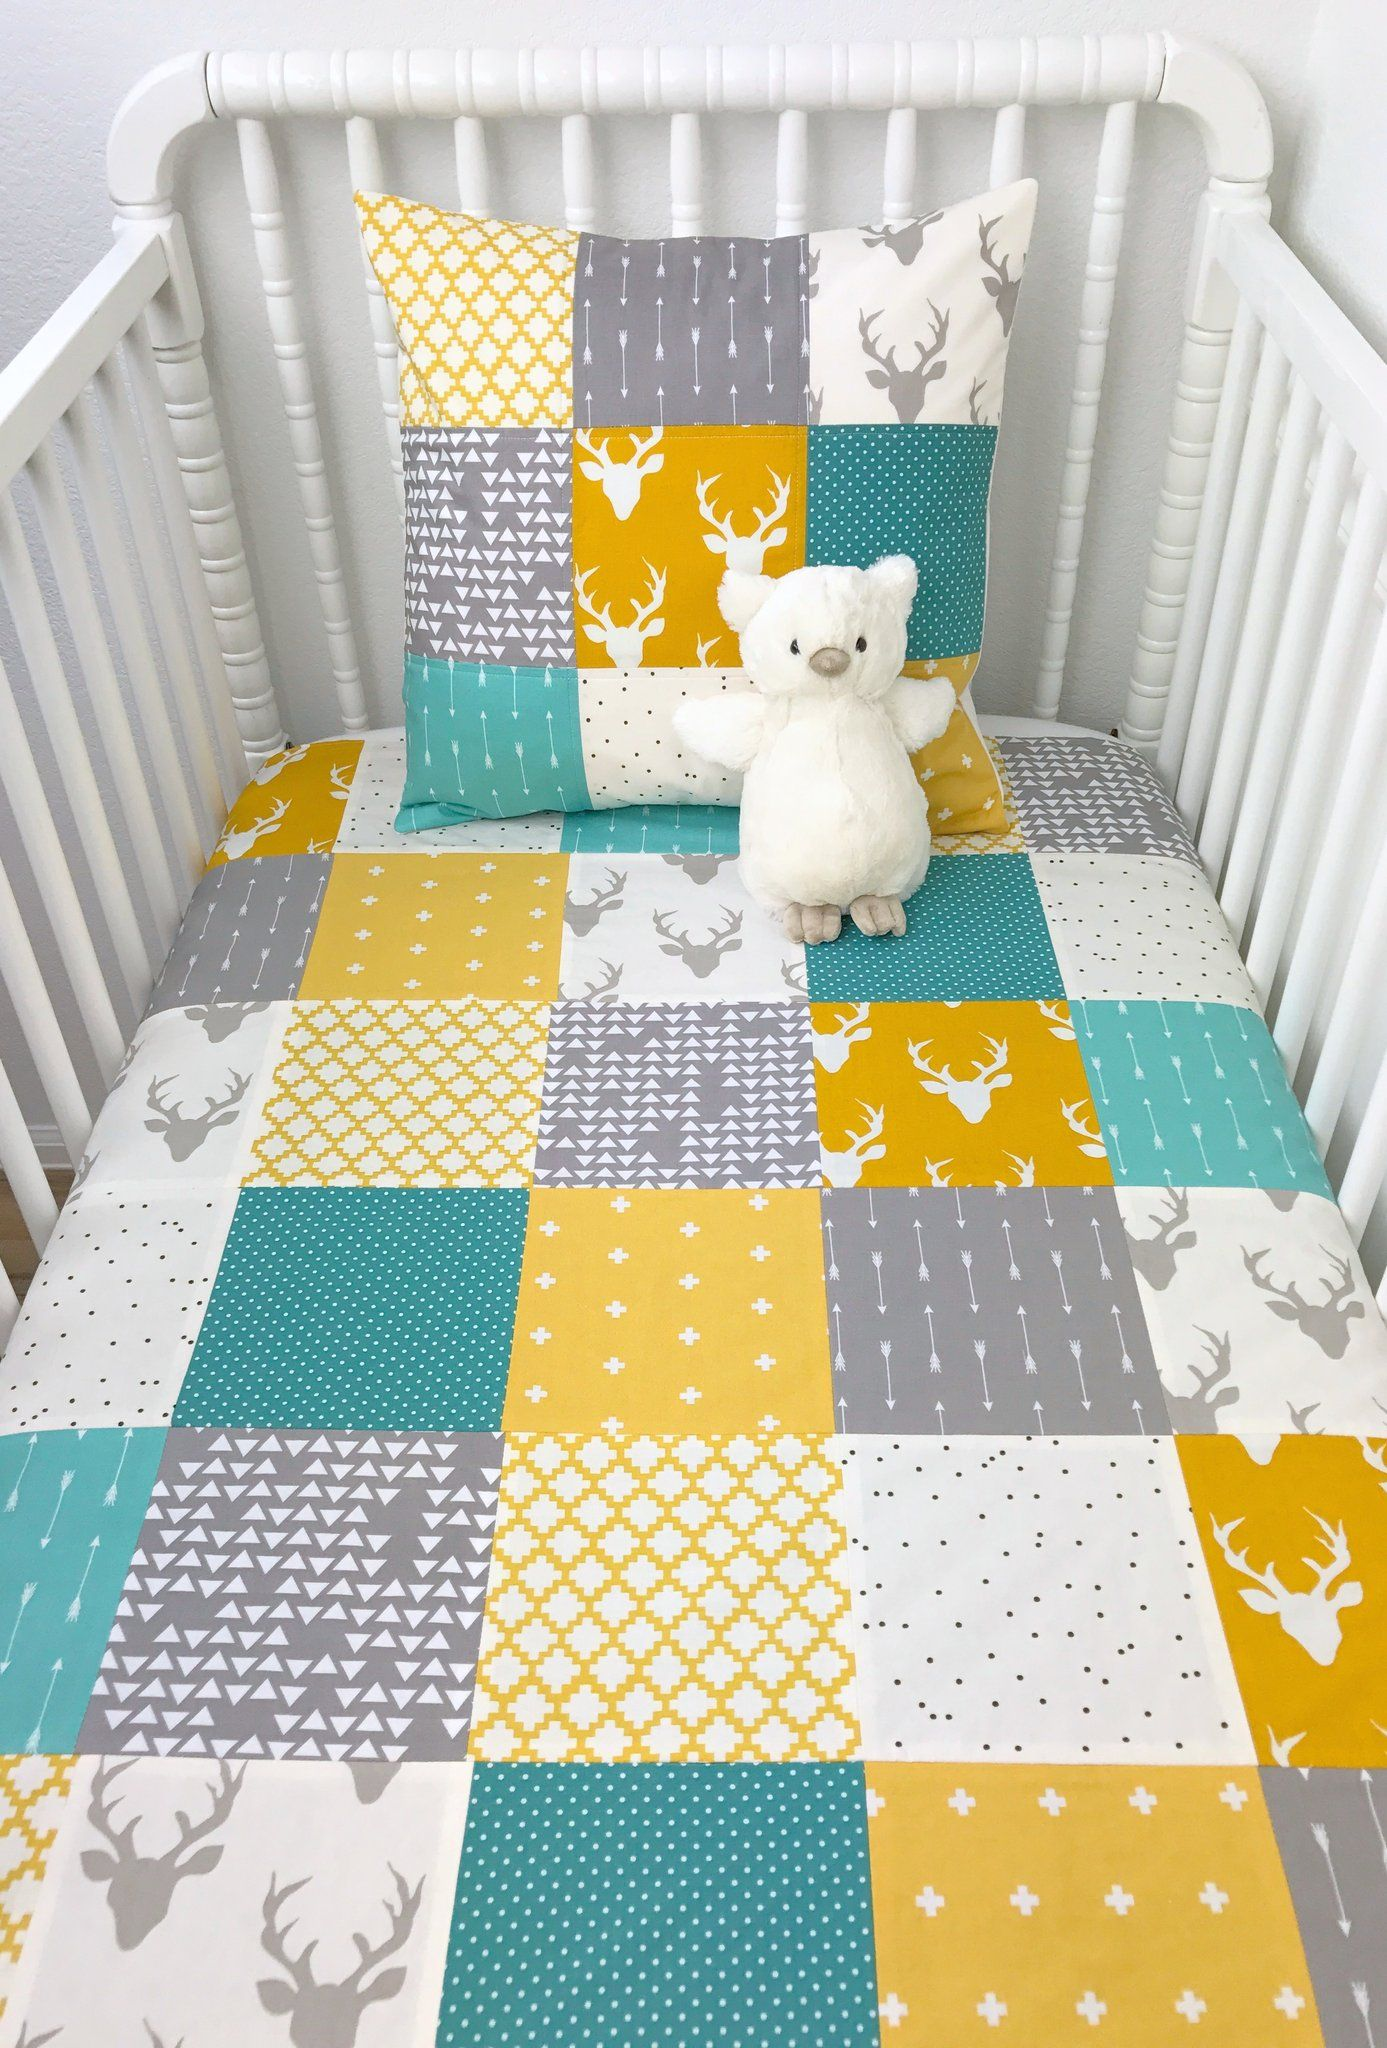 Teal Gray And Mustard Deer Baby Blanket Woodland Crib Bedding Baby Shower Gift Yellow Crib Yellow Kids Rooms Blanket Teal